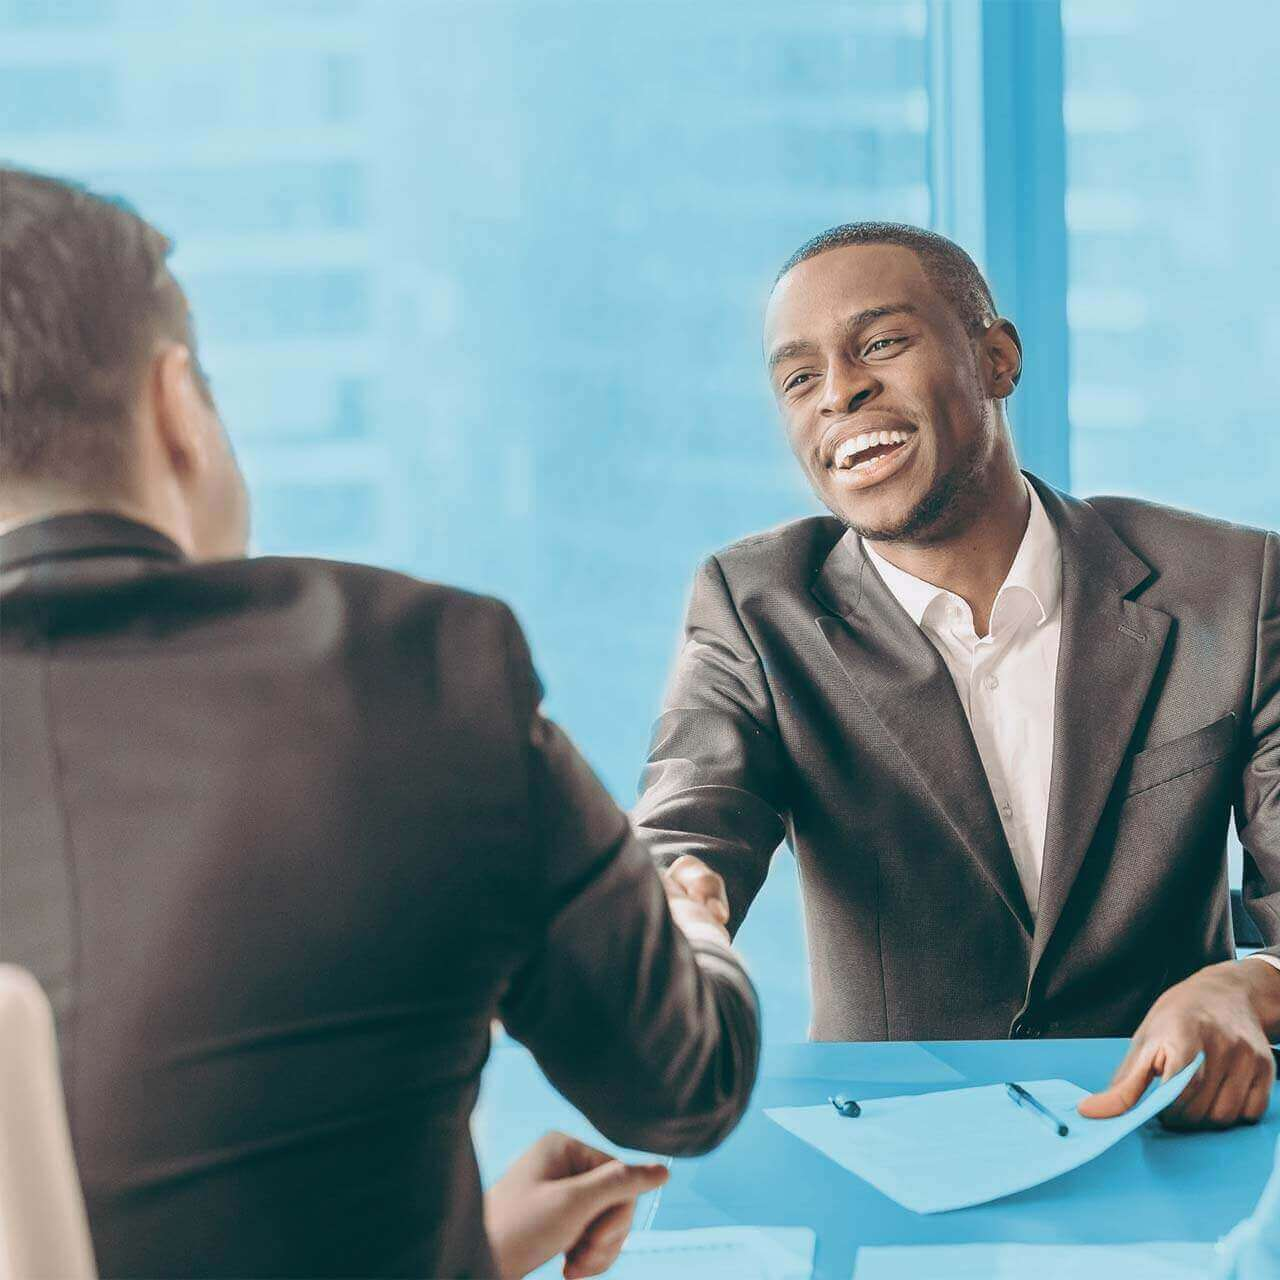 popular interview questions and how to answer them